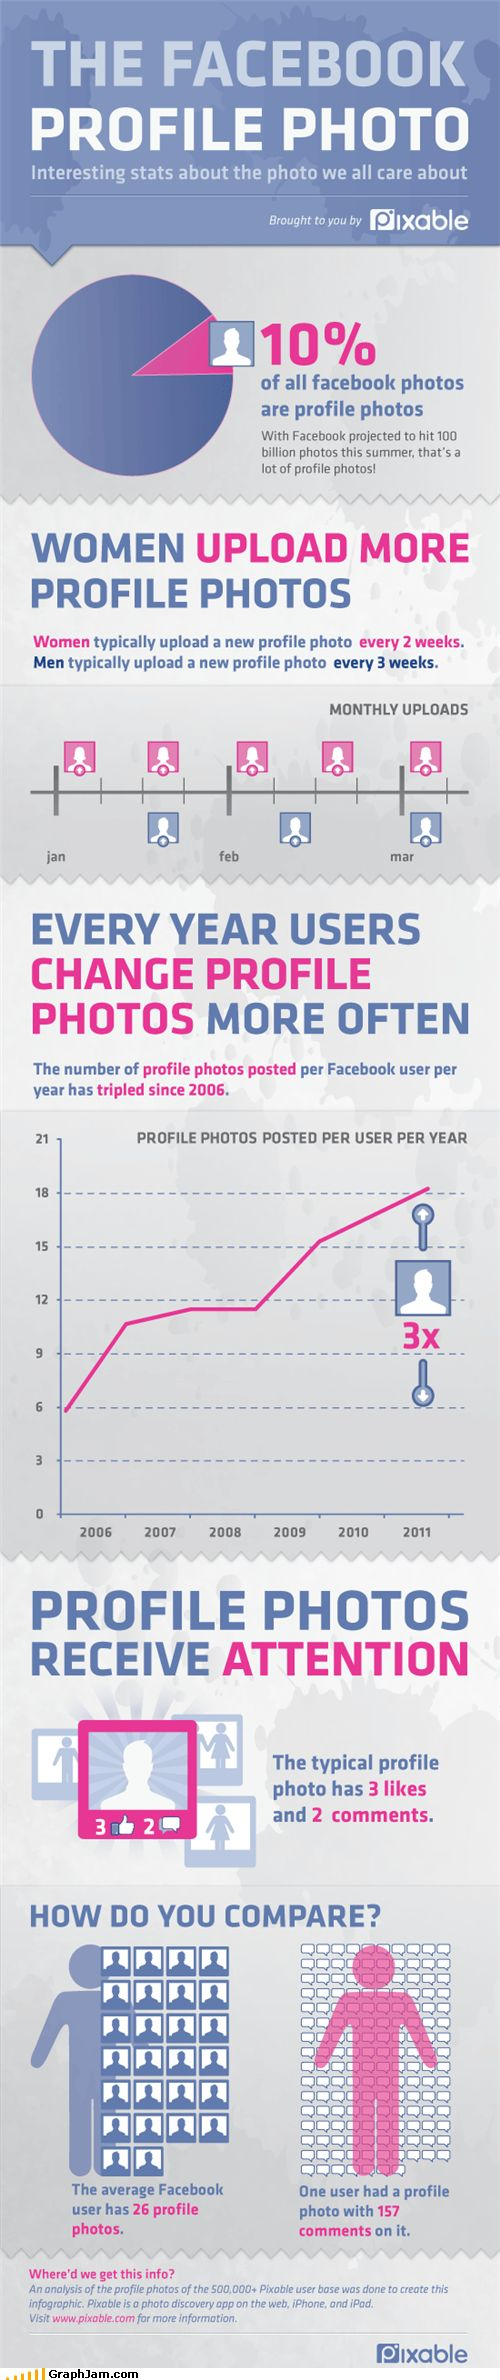 cool infographic about facebook profile photos